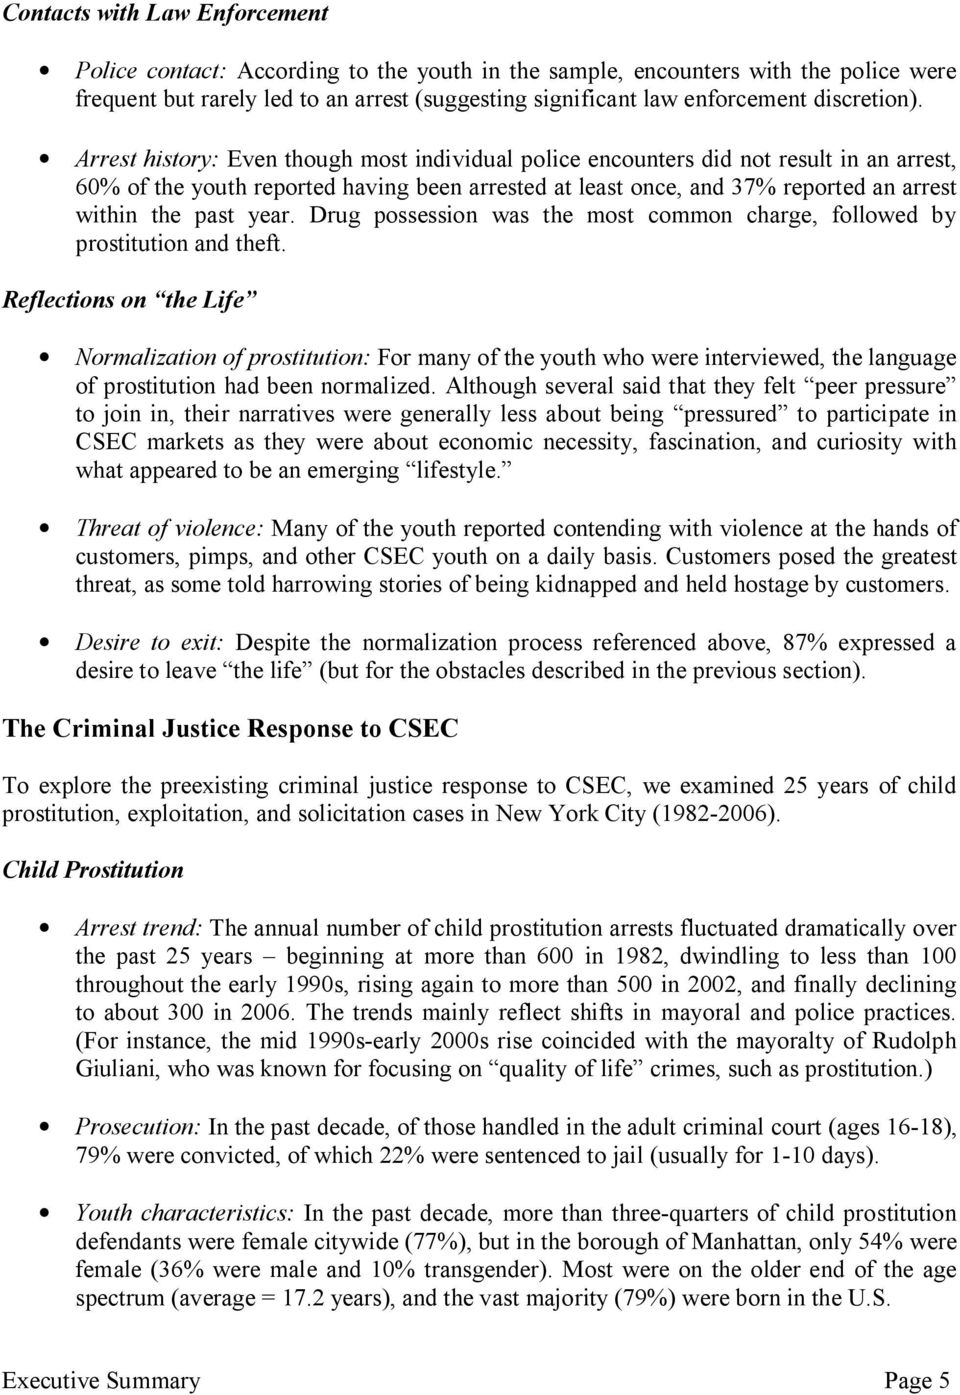 Arrest history: Even though most individual police encounters did not result in an arrest, 60% of the youth reported having been arrested at least once, and 37% reported an arrest within the past